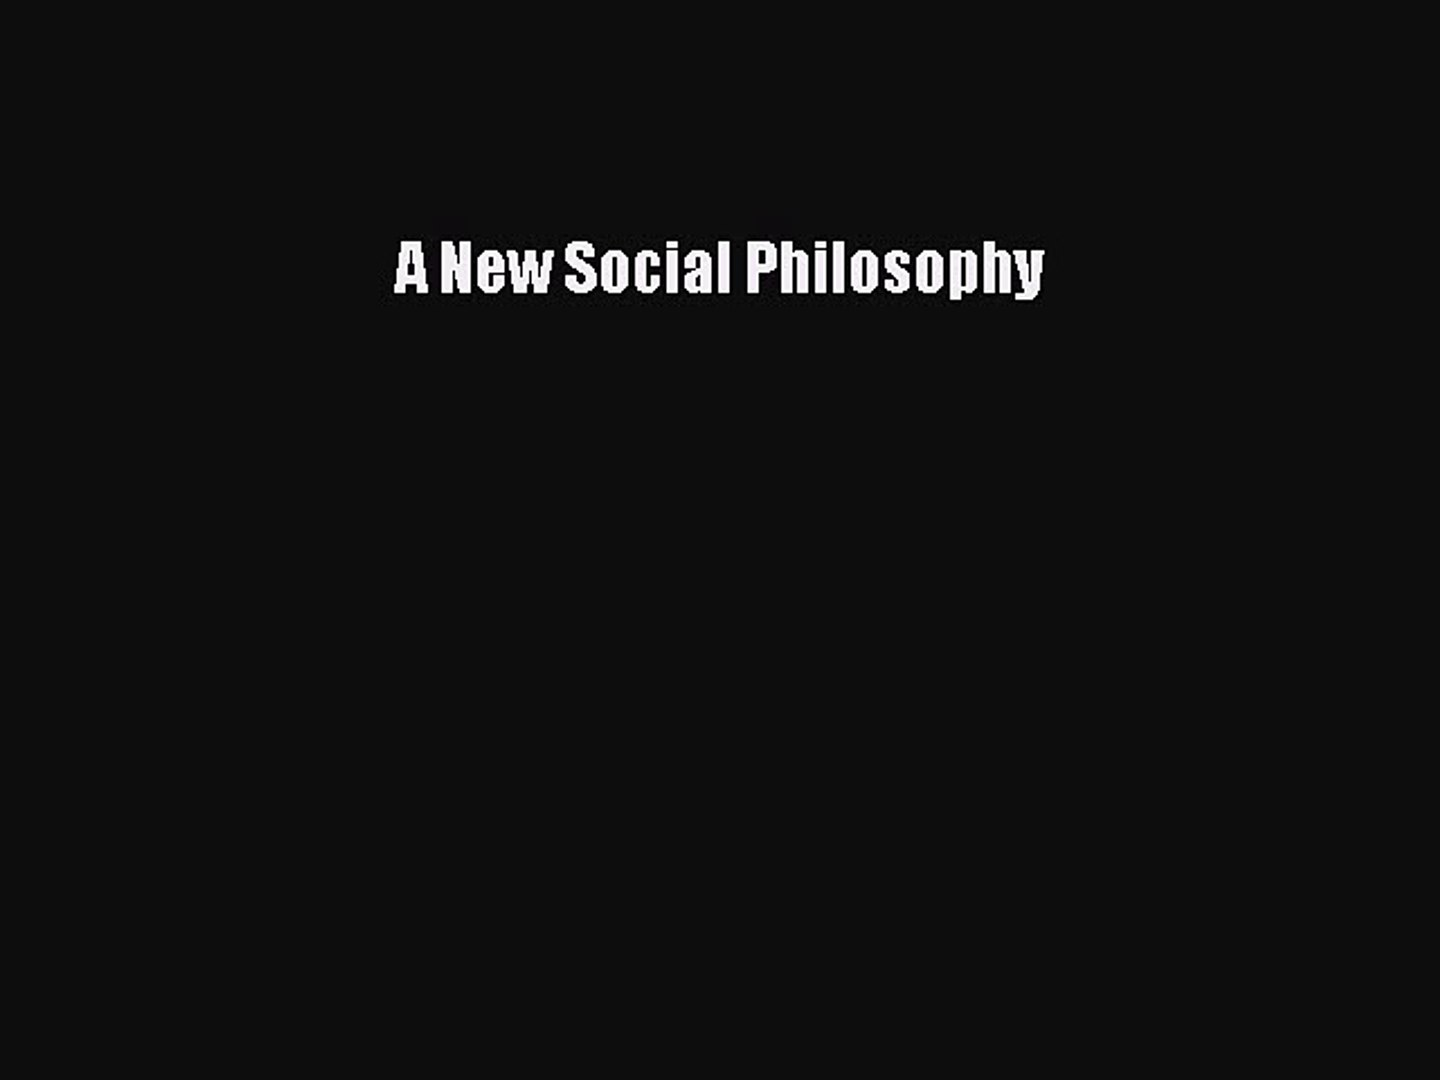 Hegels Social Philosophy: The Project of Reconciliation